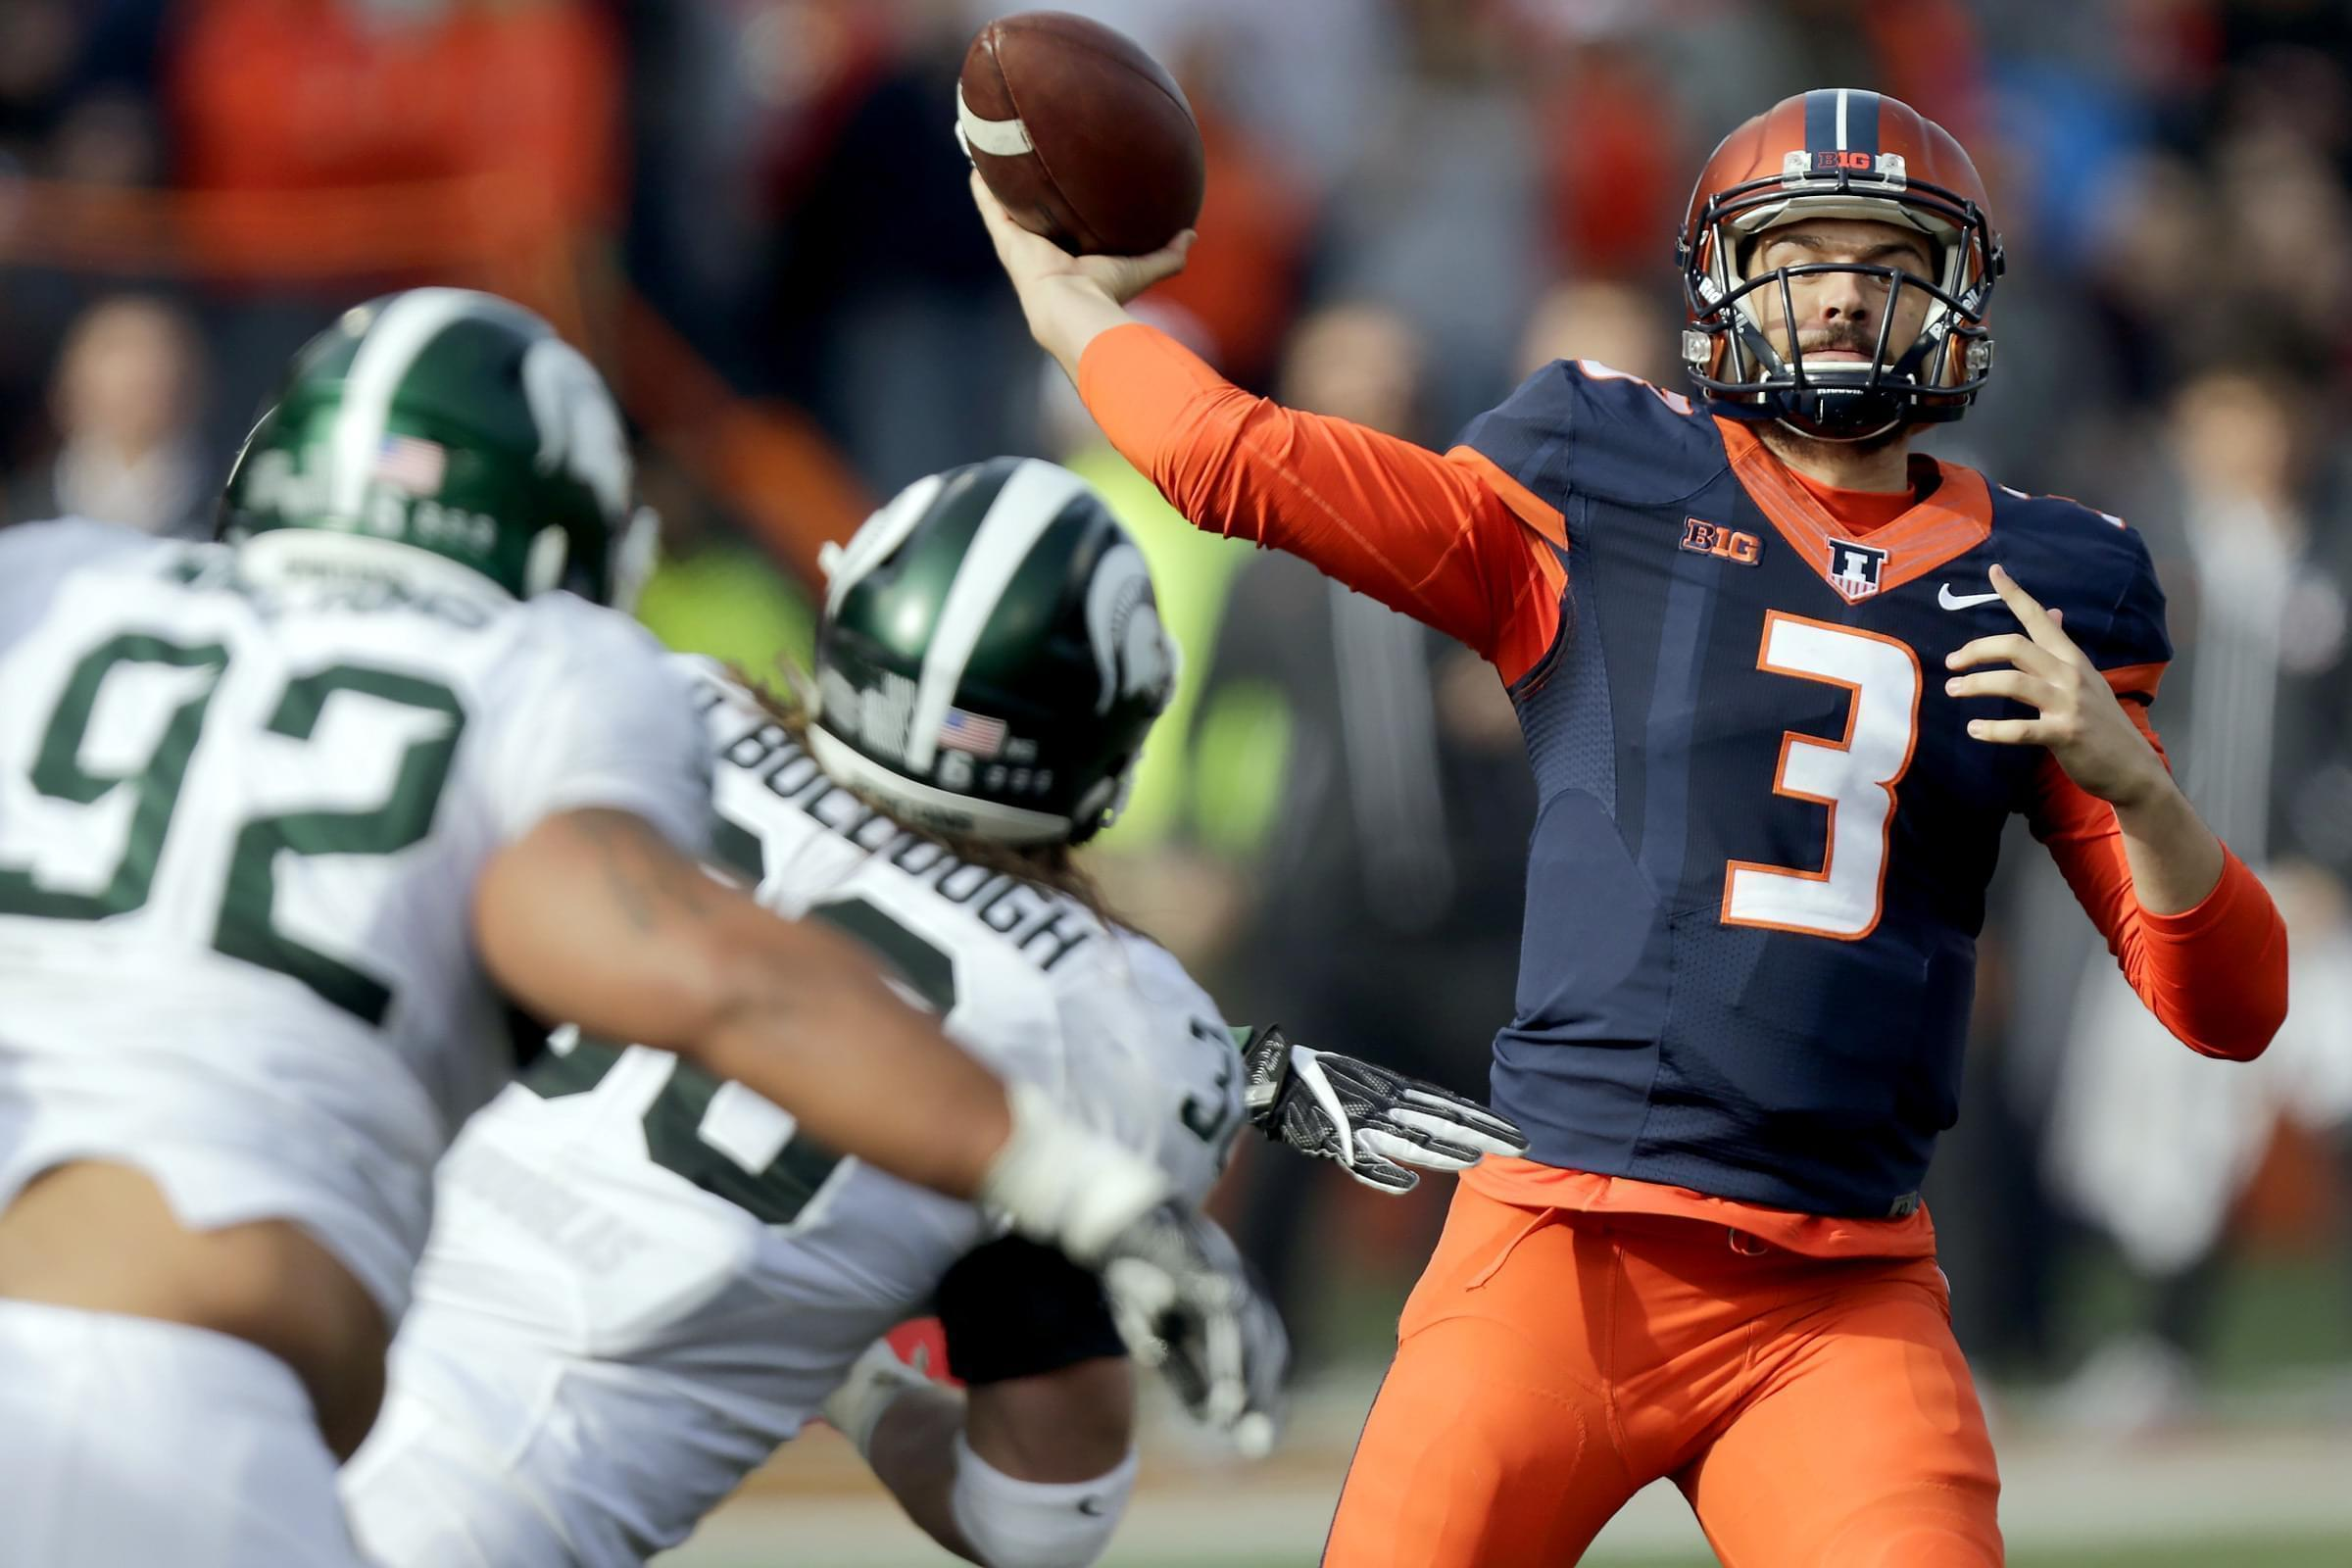 Illinois quarterback Jeff George Jr. passes against the defense of Michigan State linebacker Riley Bullough  and defensive tackle Kevin Williams  during the second half of an NCAA college football game at Memorial Stadium on Saturday.